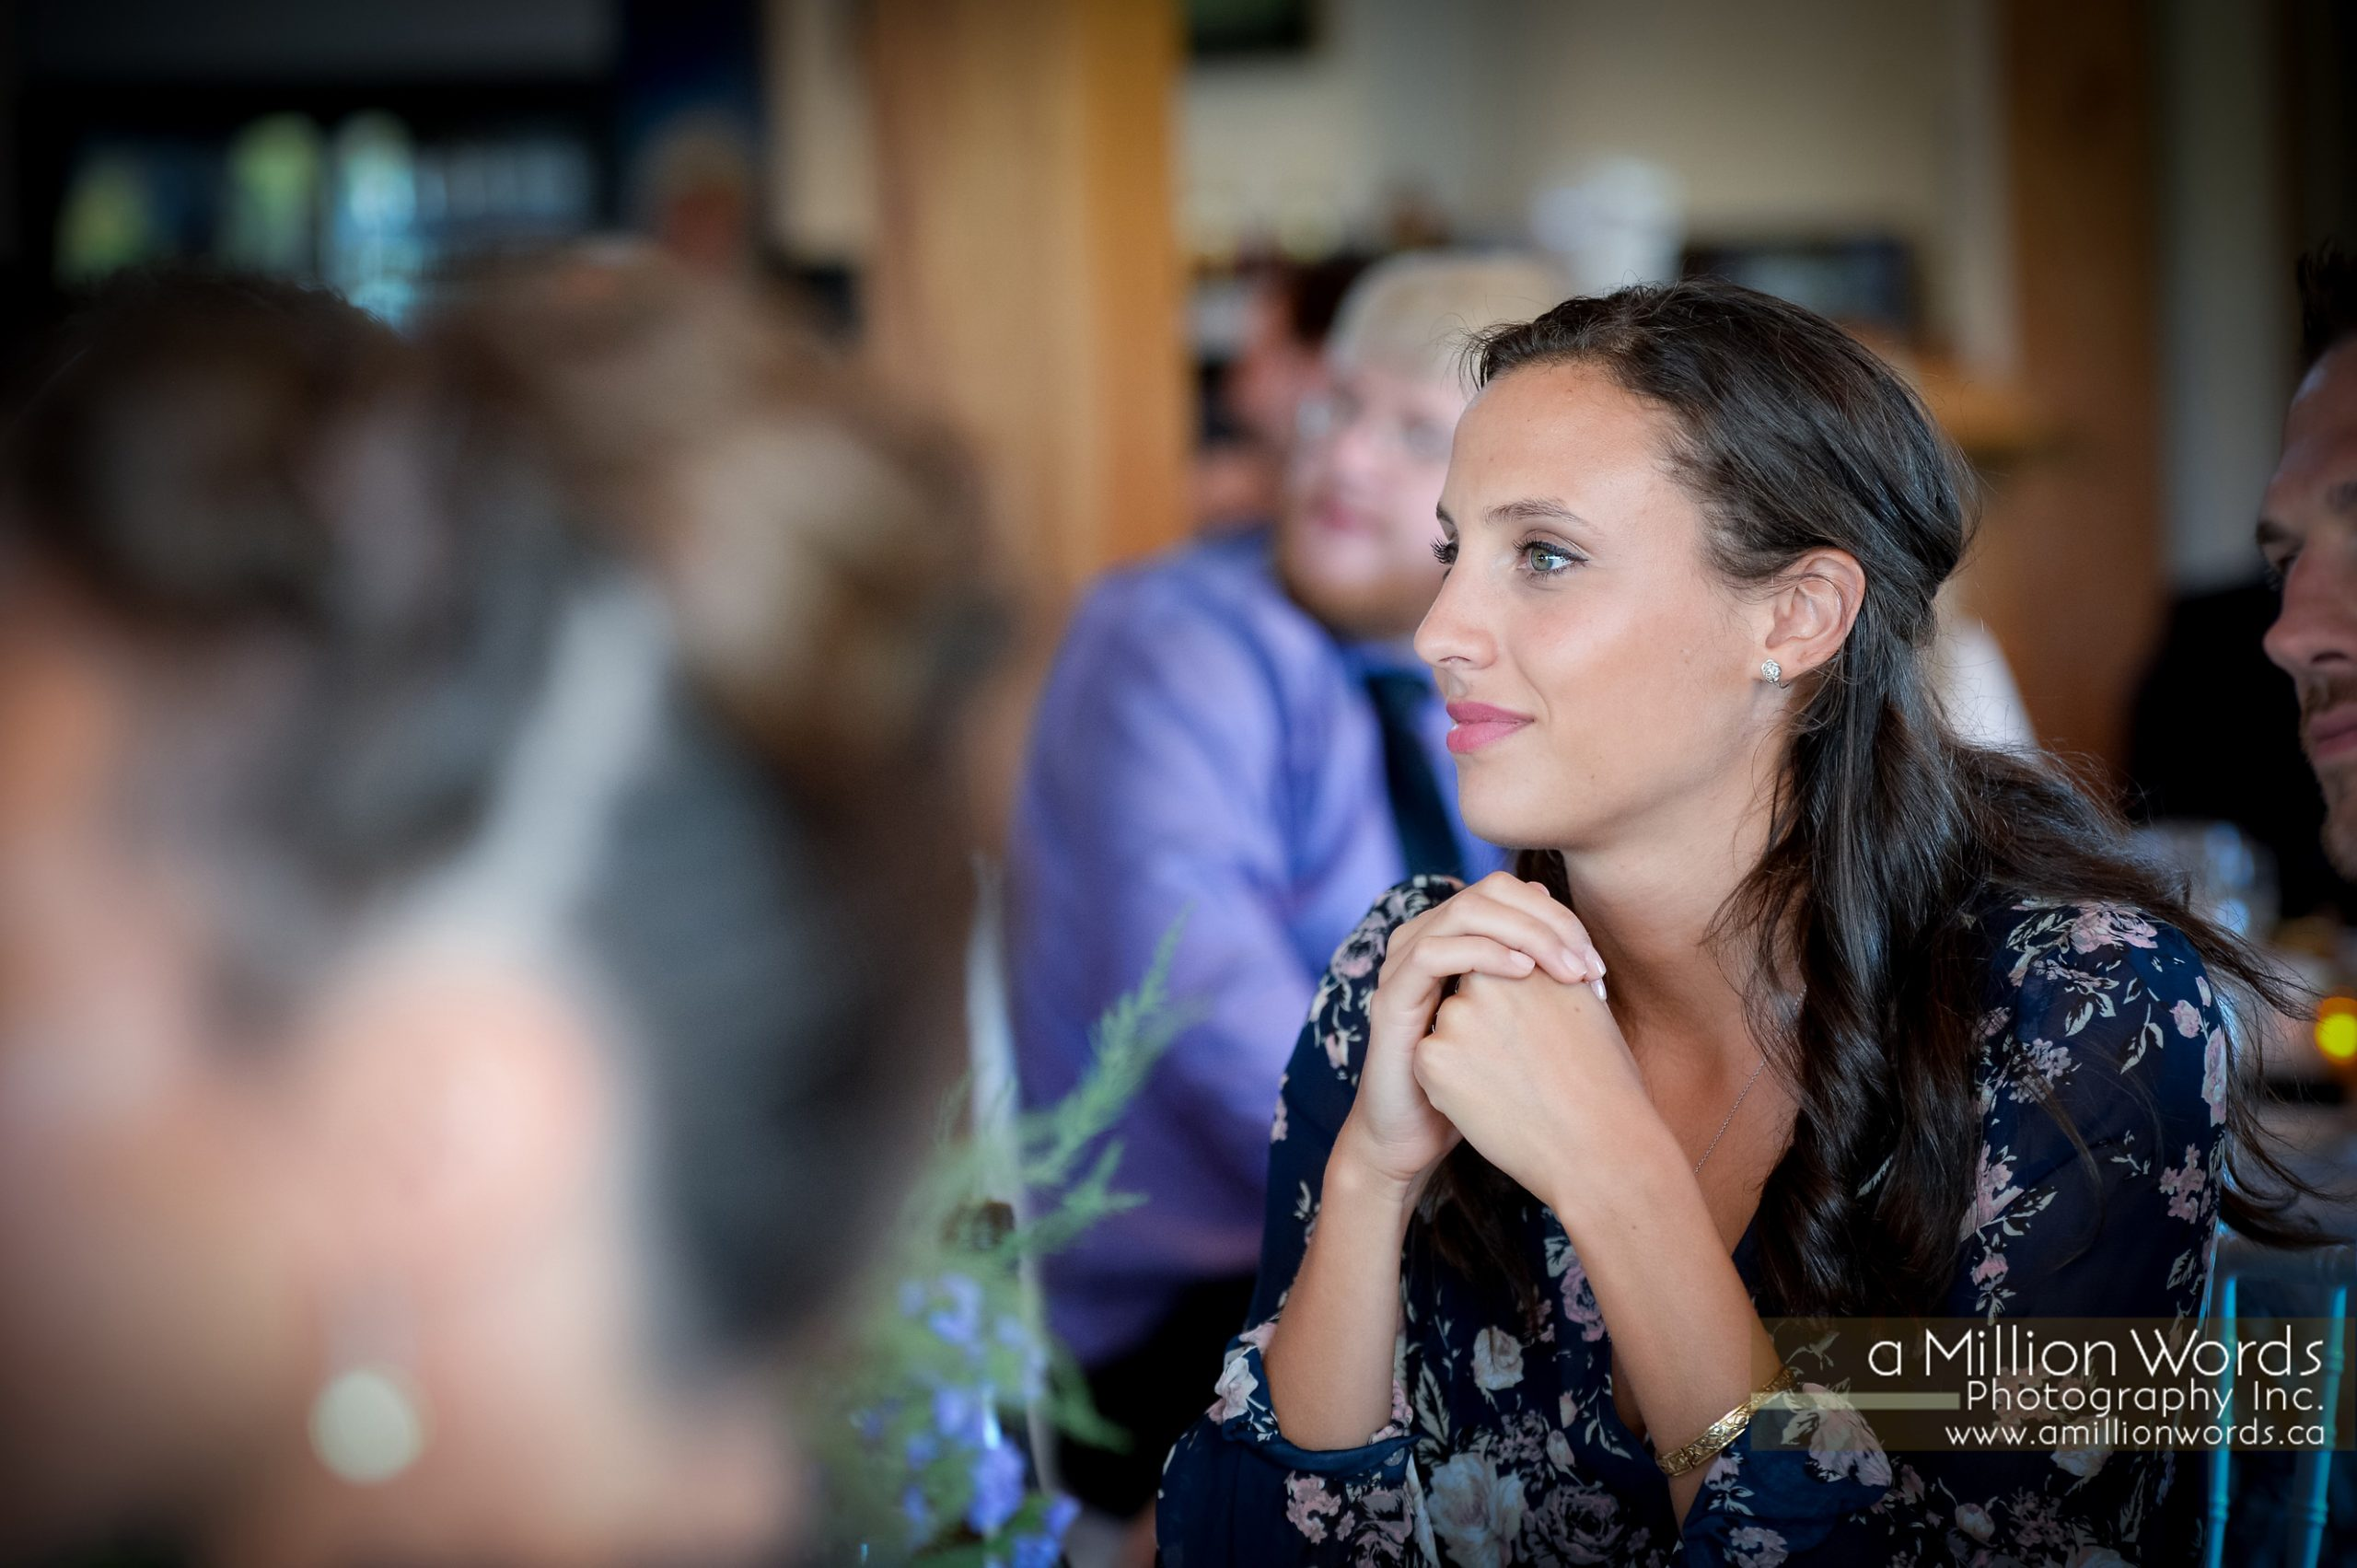 kw_wedding_photography48